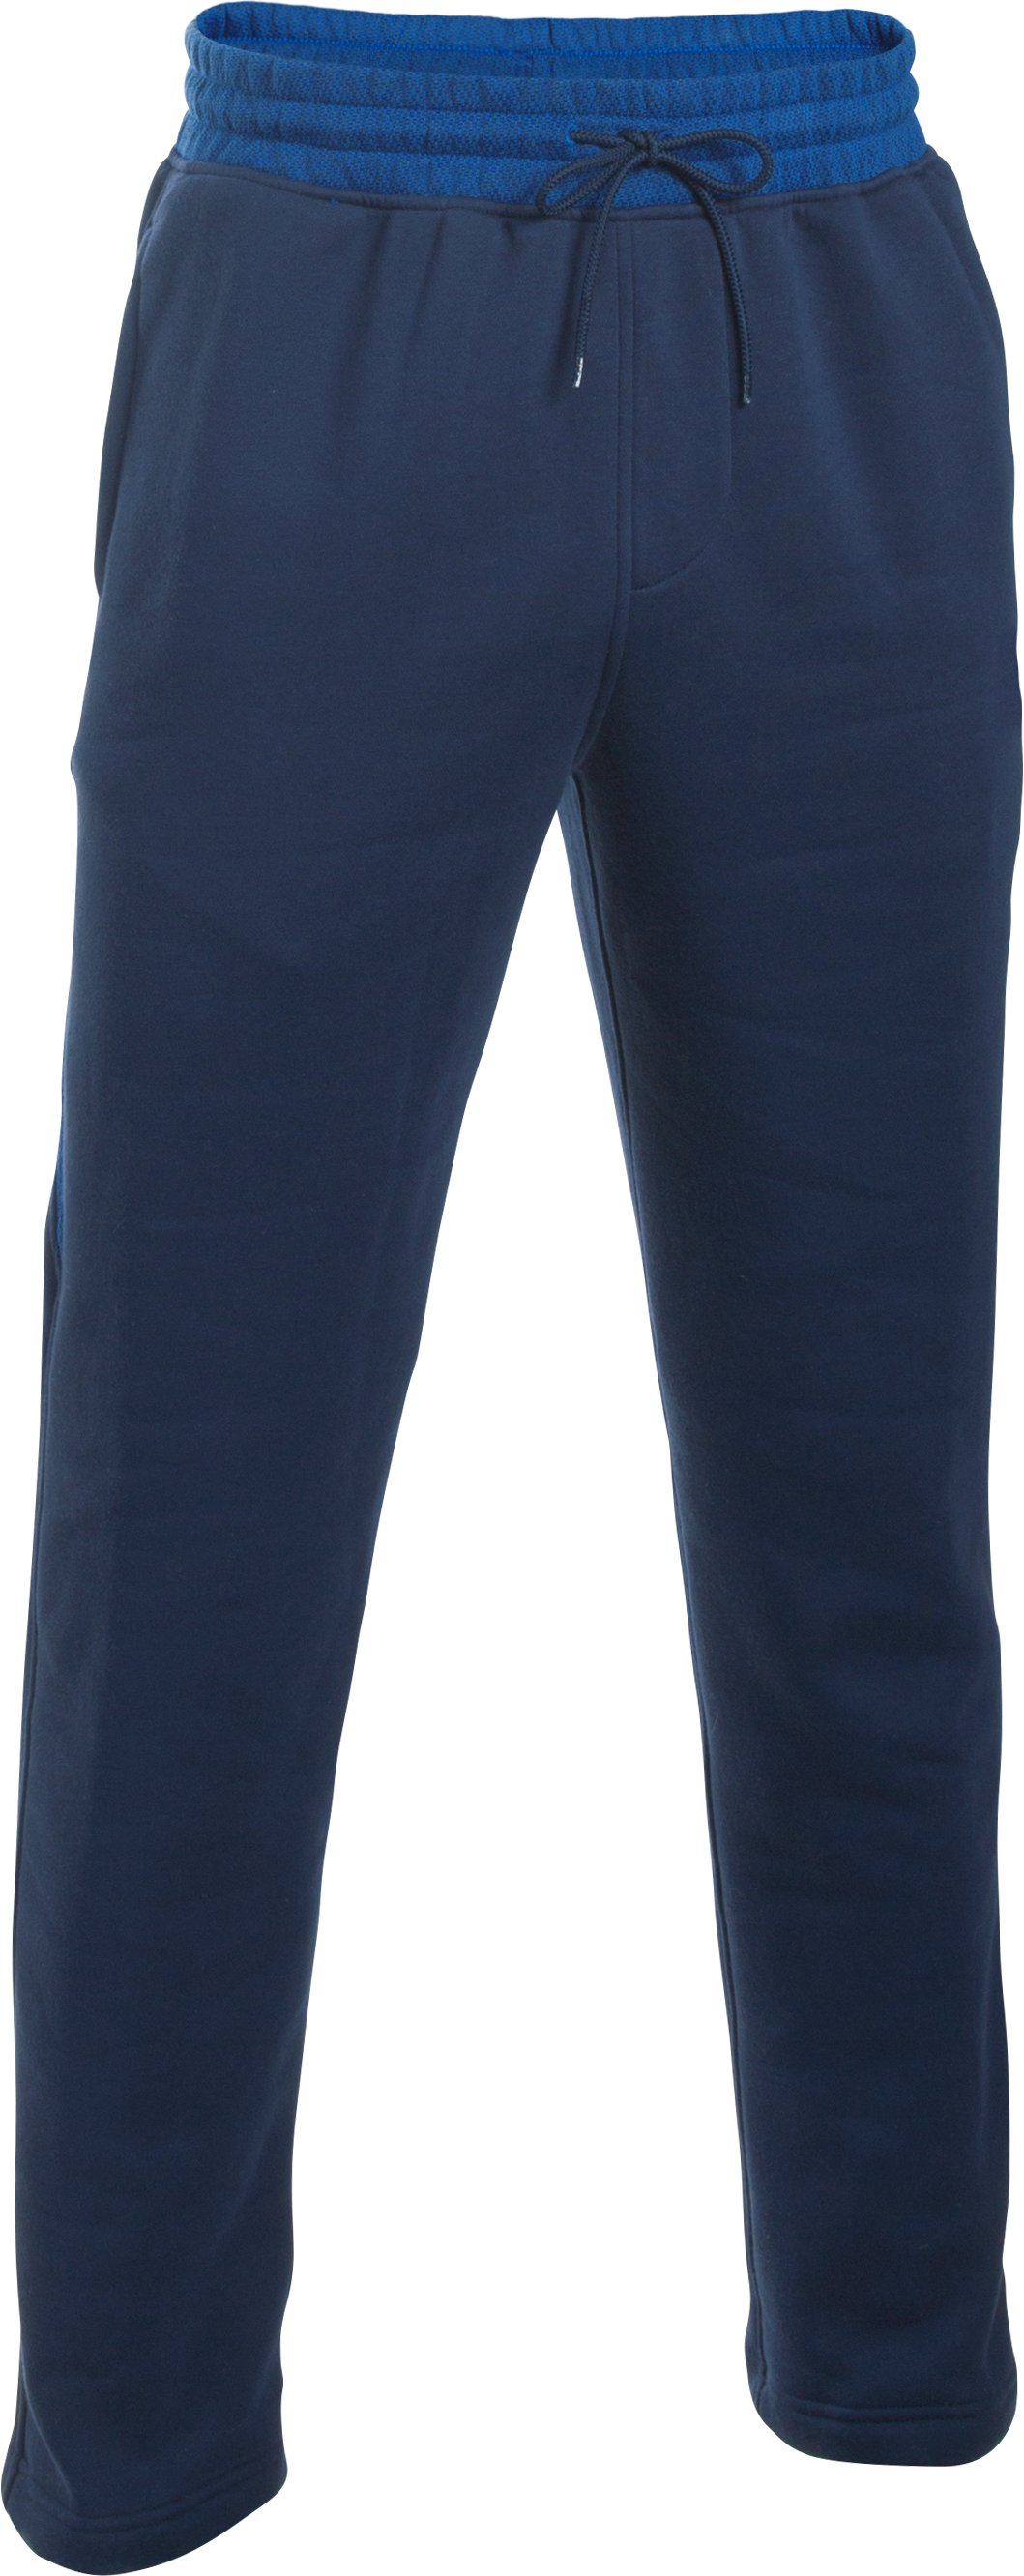 Men's SC30 Essentials Pants, Midnight Navy